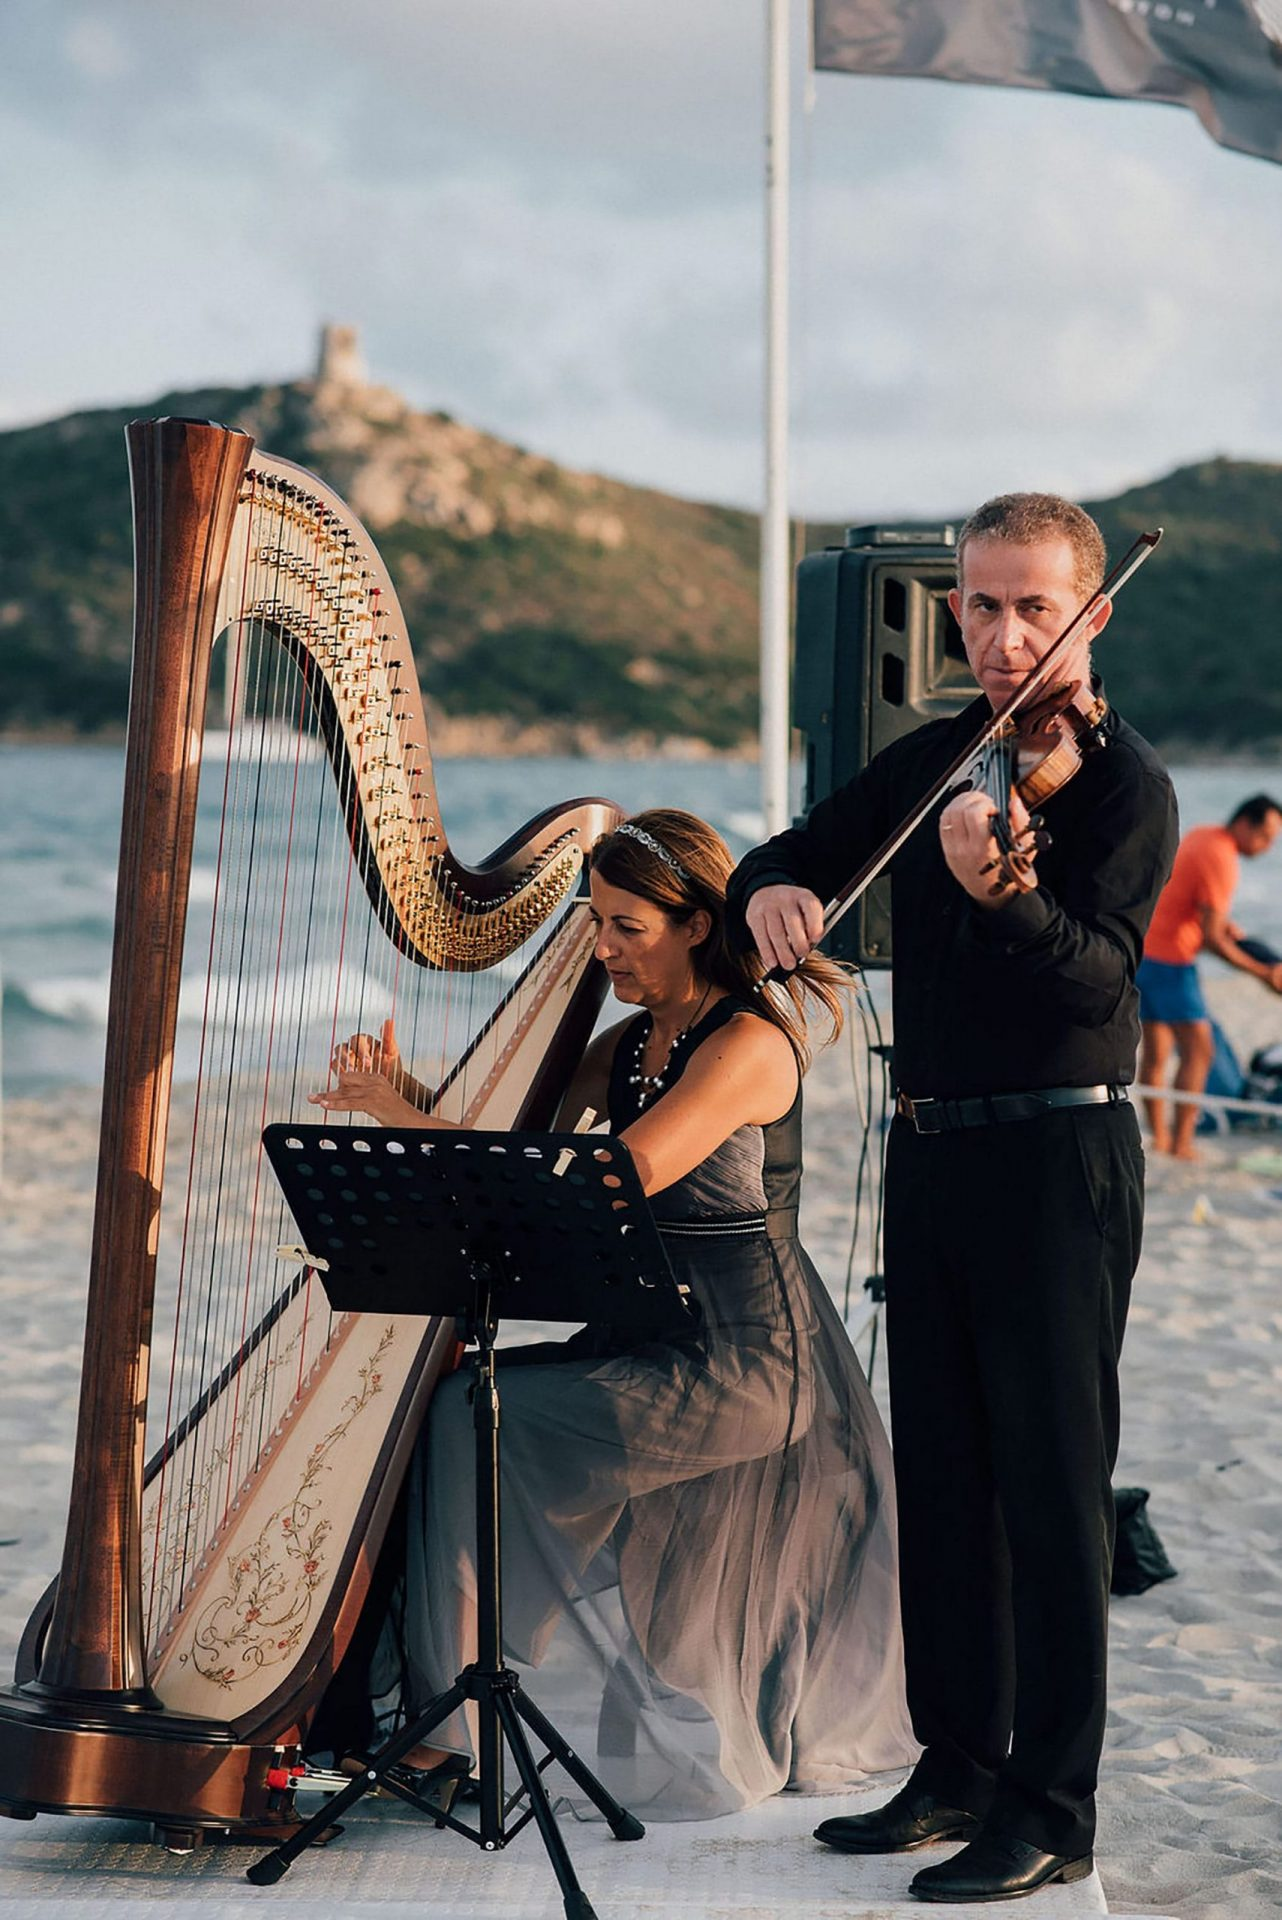 Andrea and Sebastien, wedding on the beach music